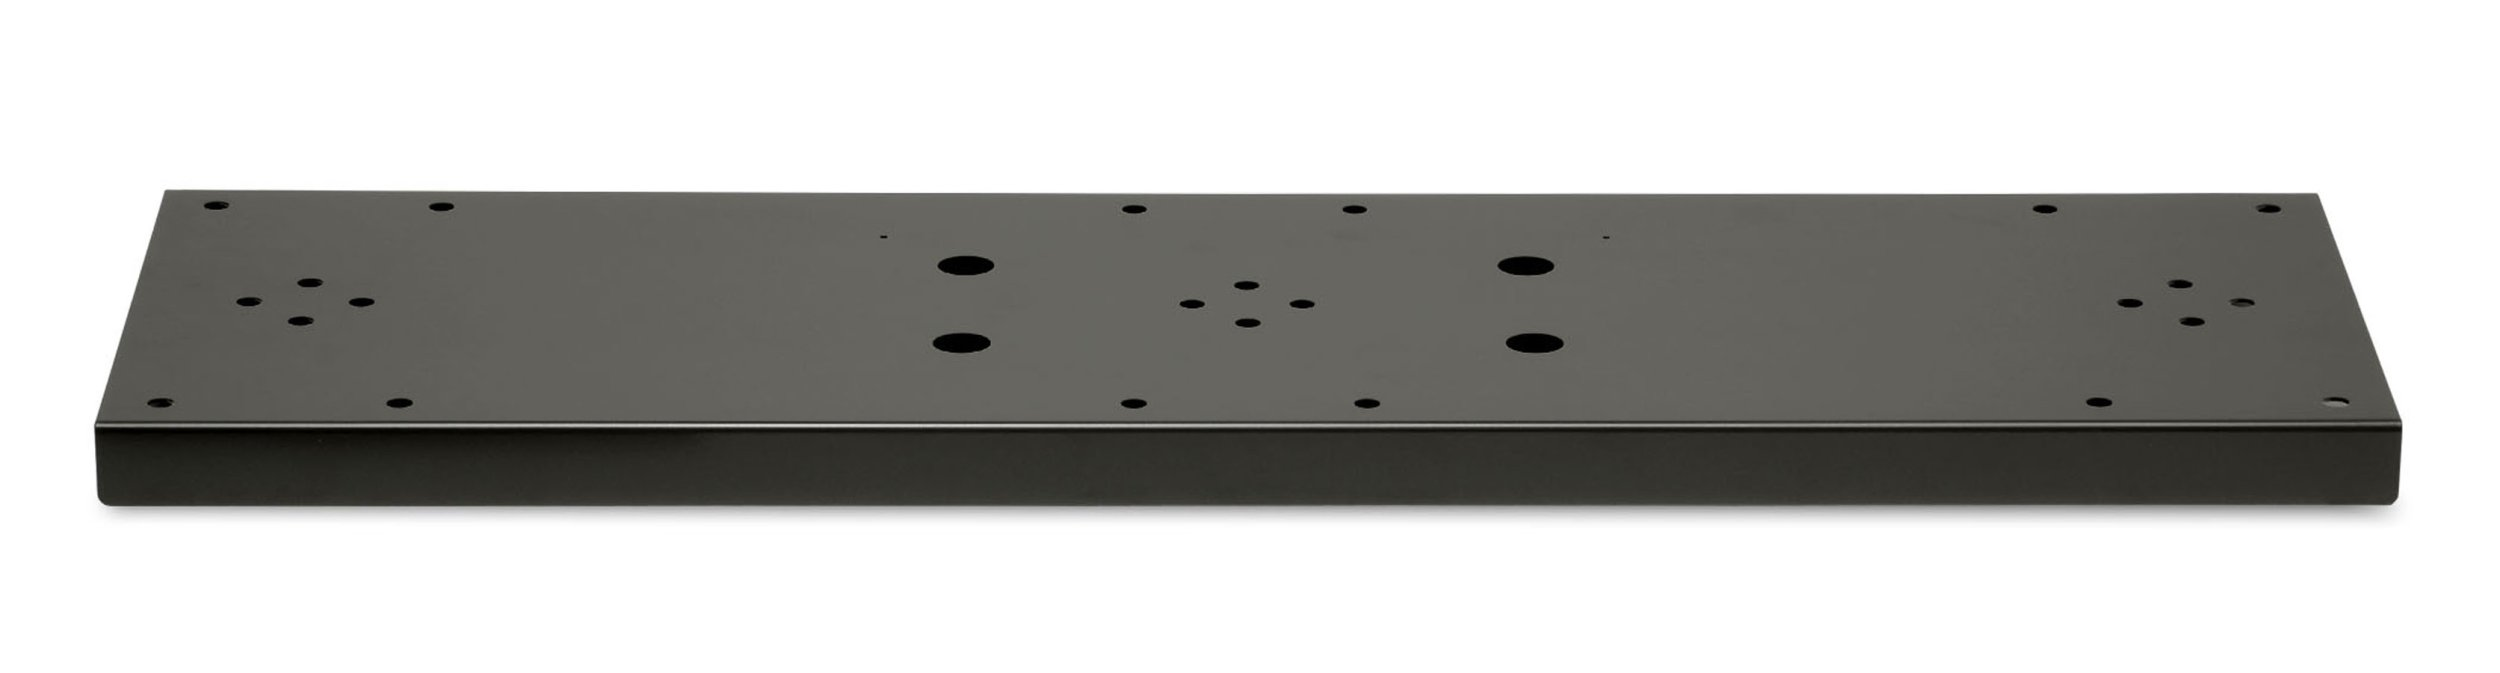 Architectural Mailboxes Tri Spreader Plate Black by ARCHITECTURAL MAILBOXES